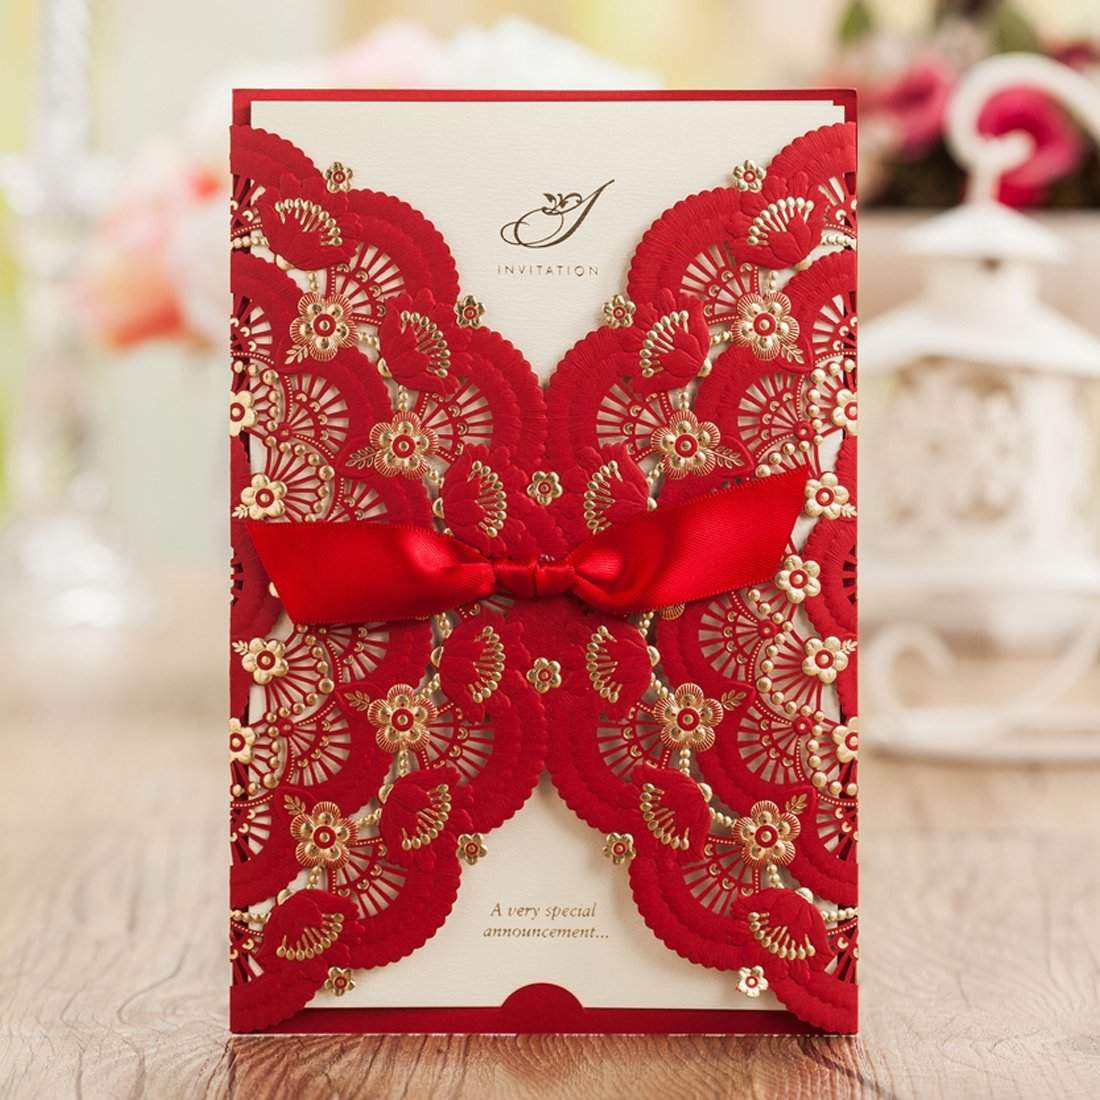 Best ideas about Wedding Invitations DIY . Save or Pin Top 10 Best Cheap DIY Wedding Invitations Now.